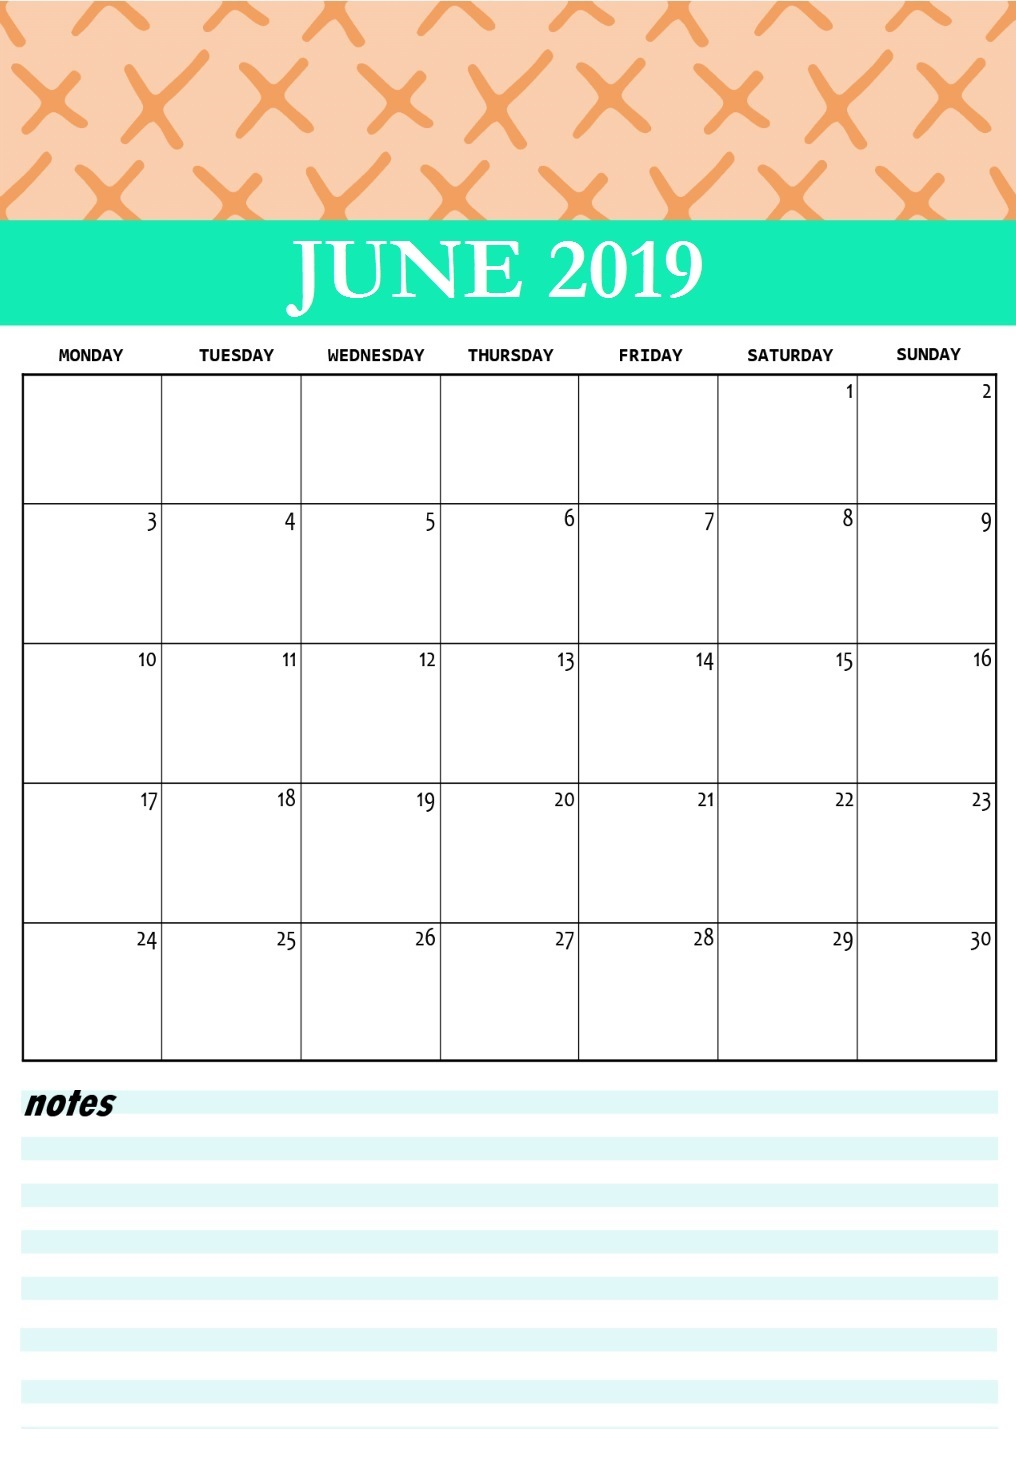 picture regarding June Printable Calendar identified as June 2019 Printable Calendar Lovely - Obtain Totally free Printable